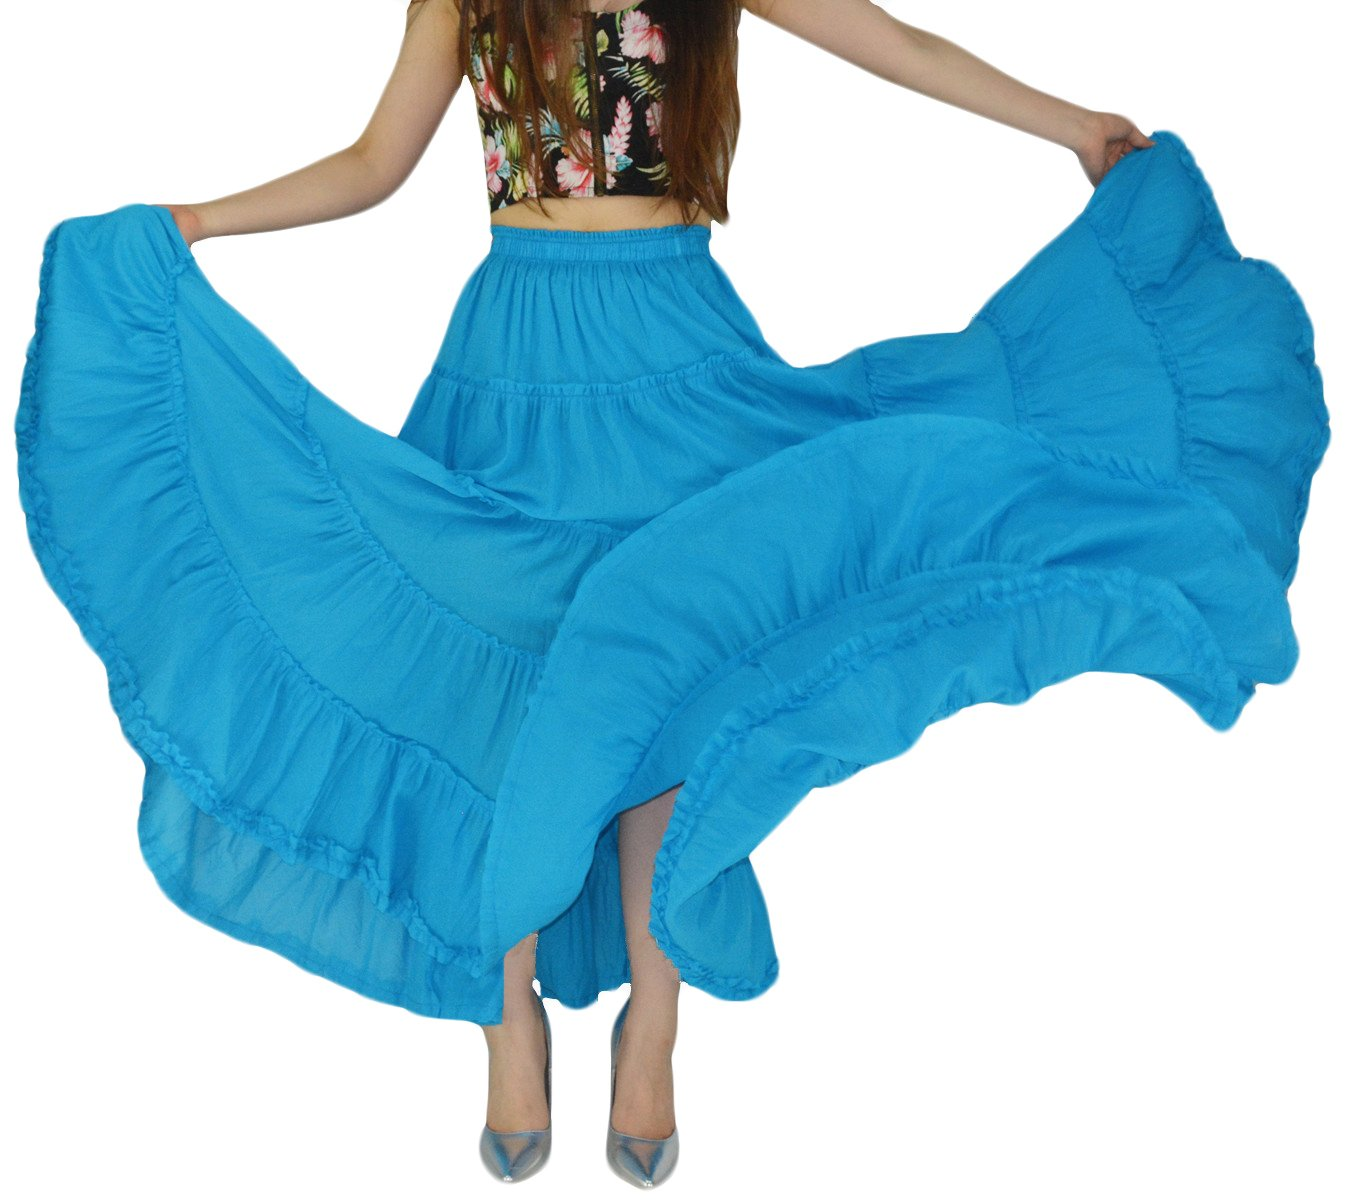 YSJERA Women's Cotton 5 Tiered A Line Pleated Maxi Skirt Long Swing Dance Skirts (One Size, Sky Blue)